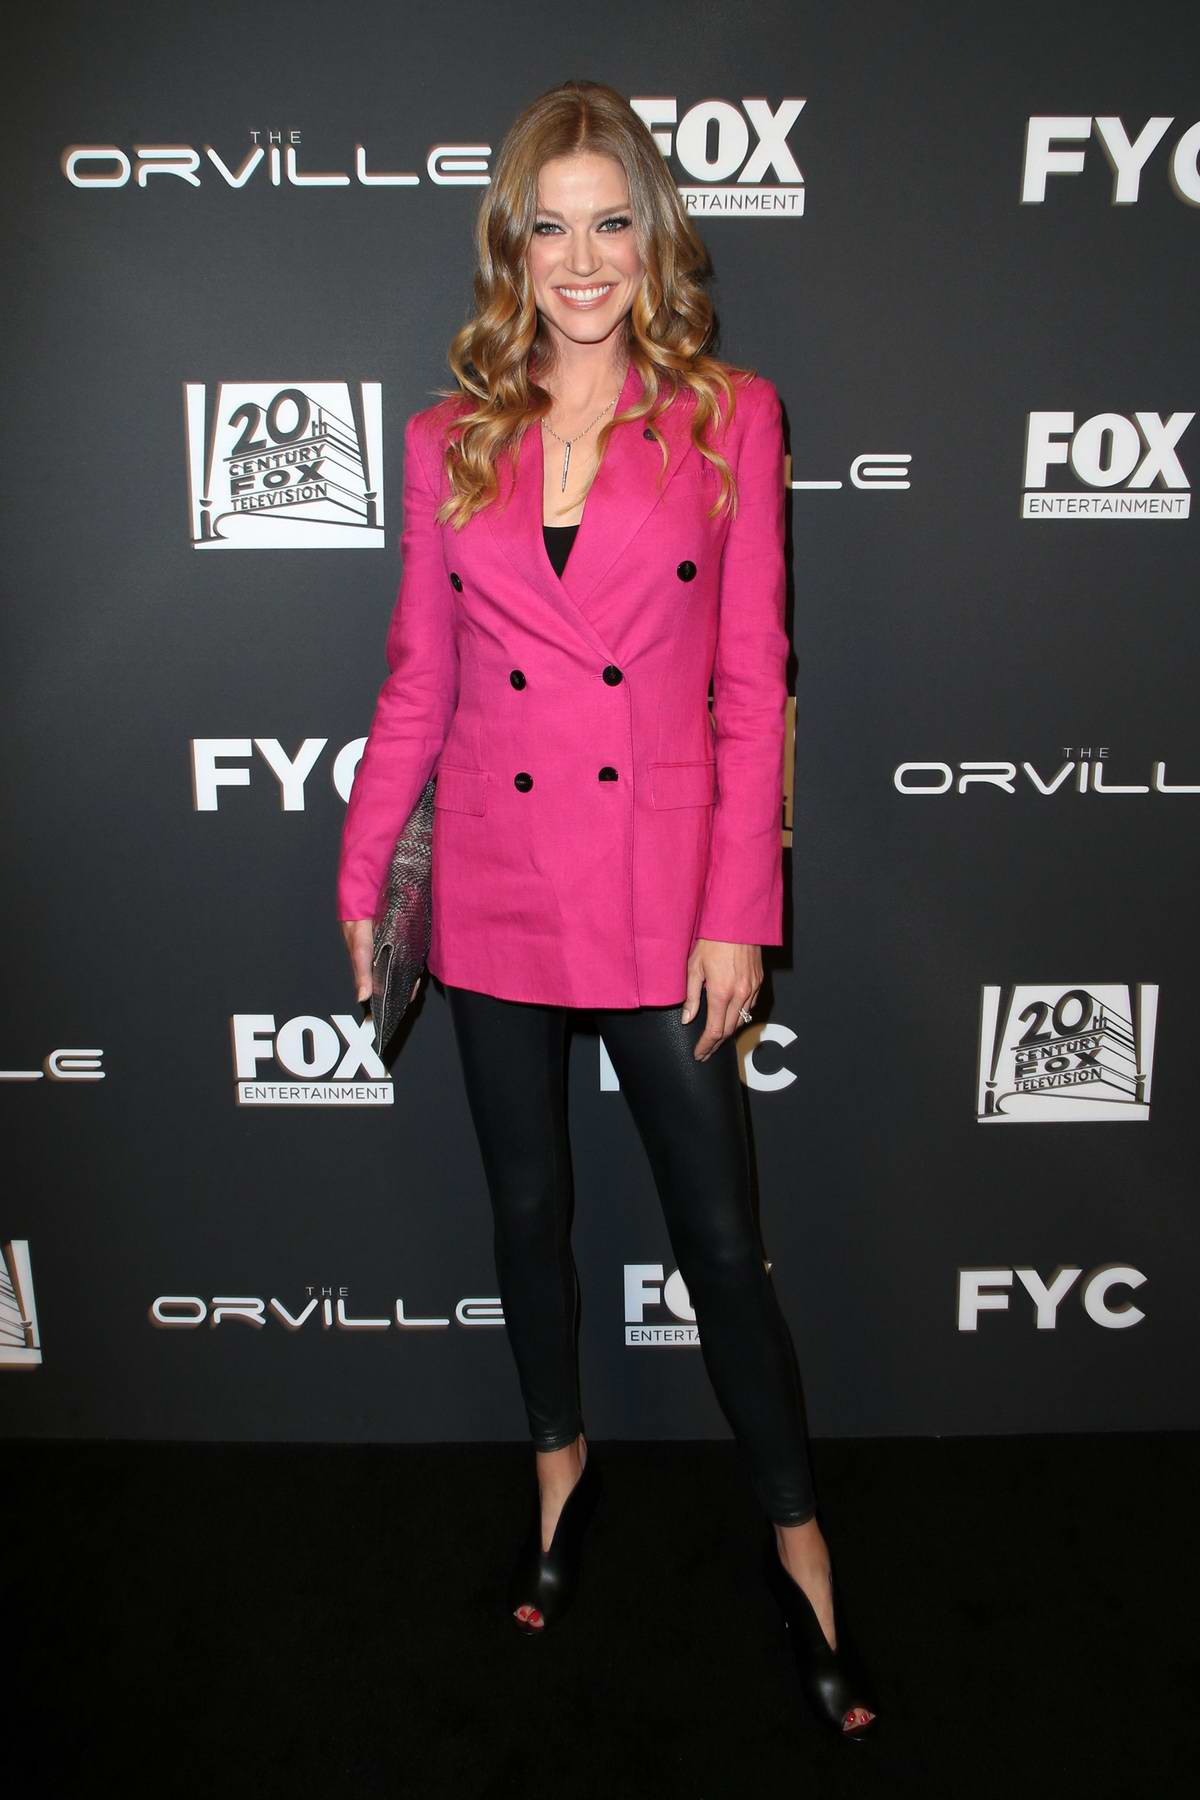 Adrianne Palicki attends the FYC event for 'The Orville' TV Show in Los Angeles